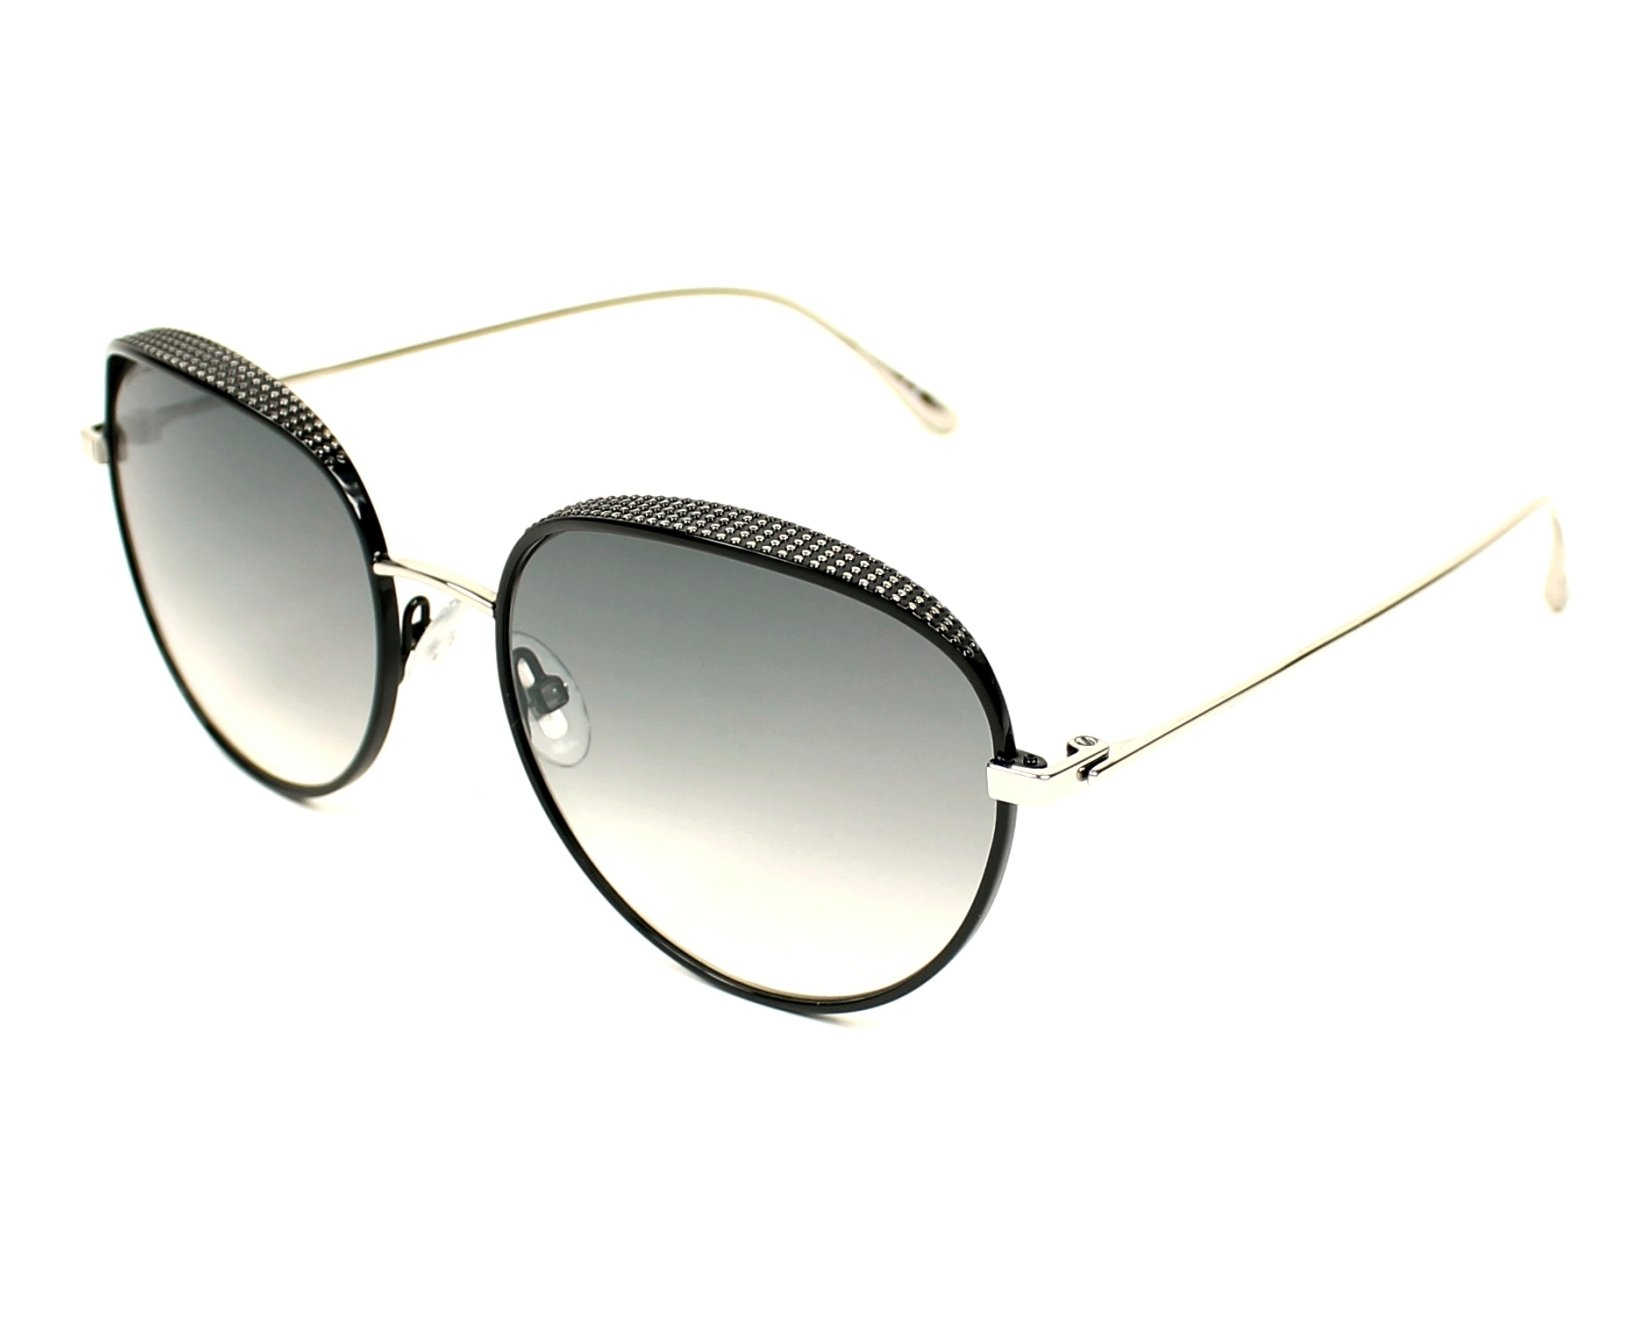 Jimmy Choo Sunglasses Silver With Grey Lenses Ello S Jin